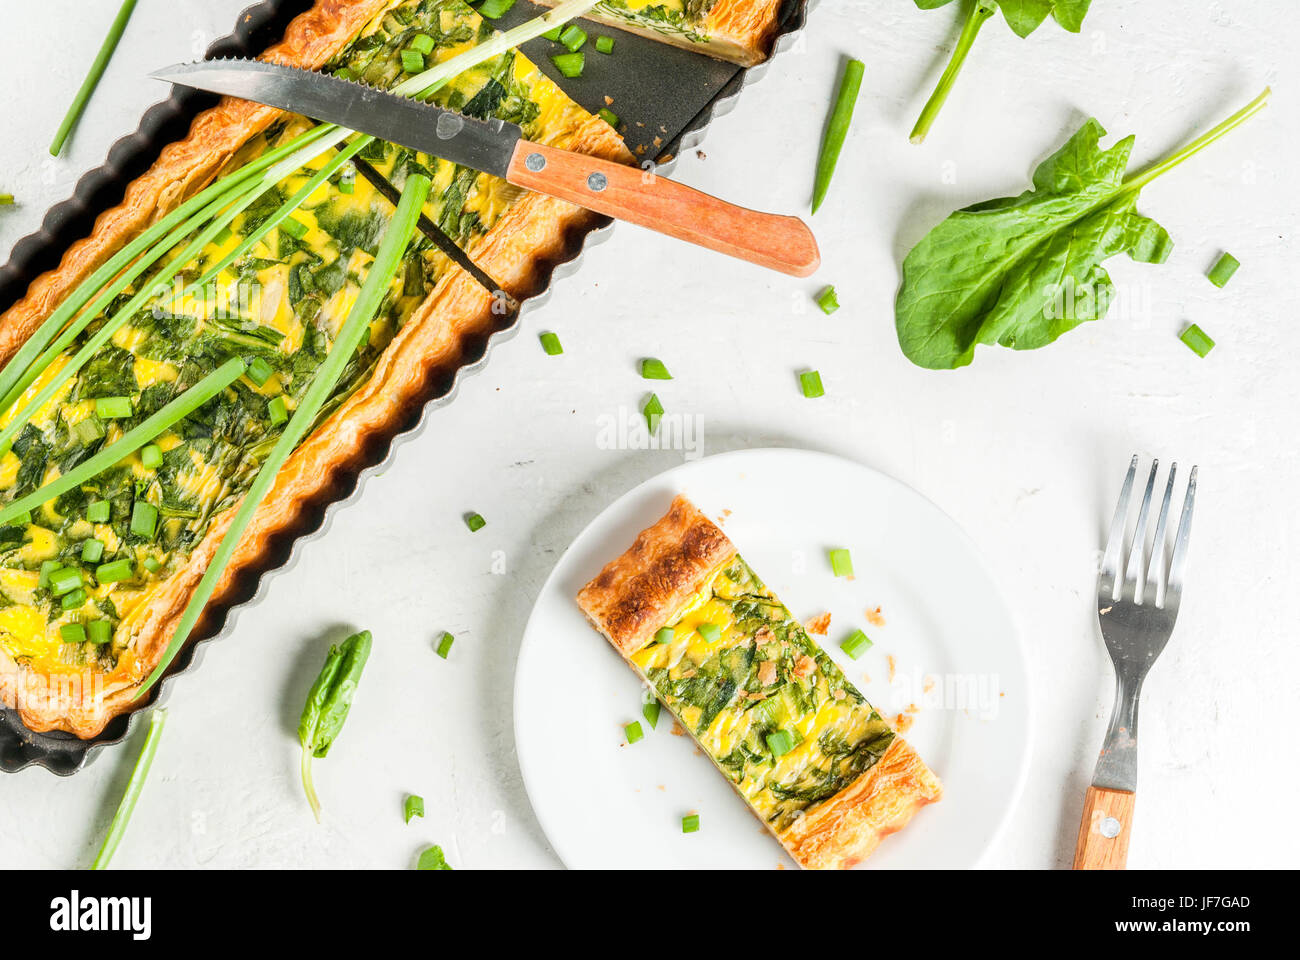 French home cooking. Casserole. Pie. quiche lorraine from puff pastry, with young green onions and spinach. On white - Stock Image